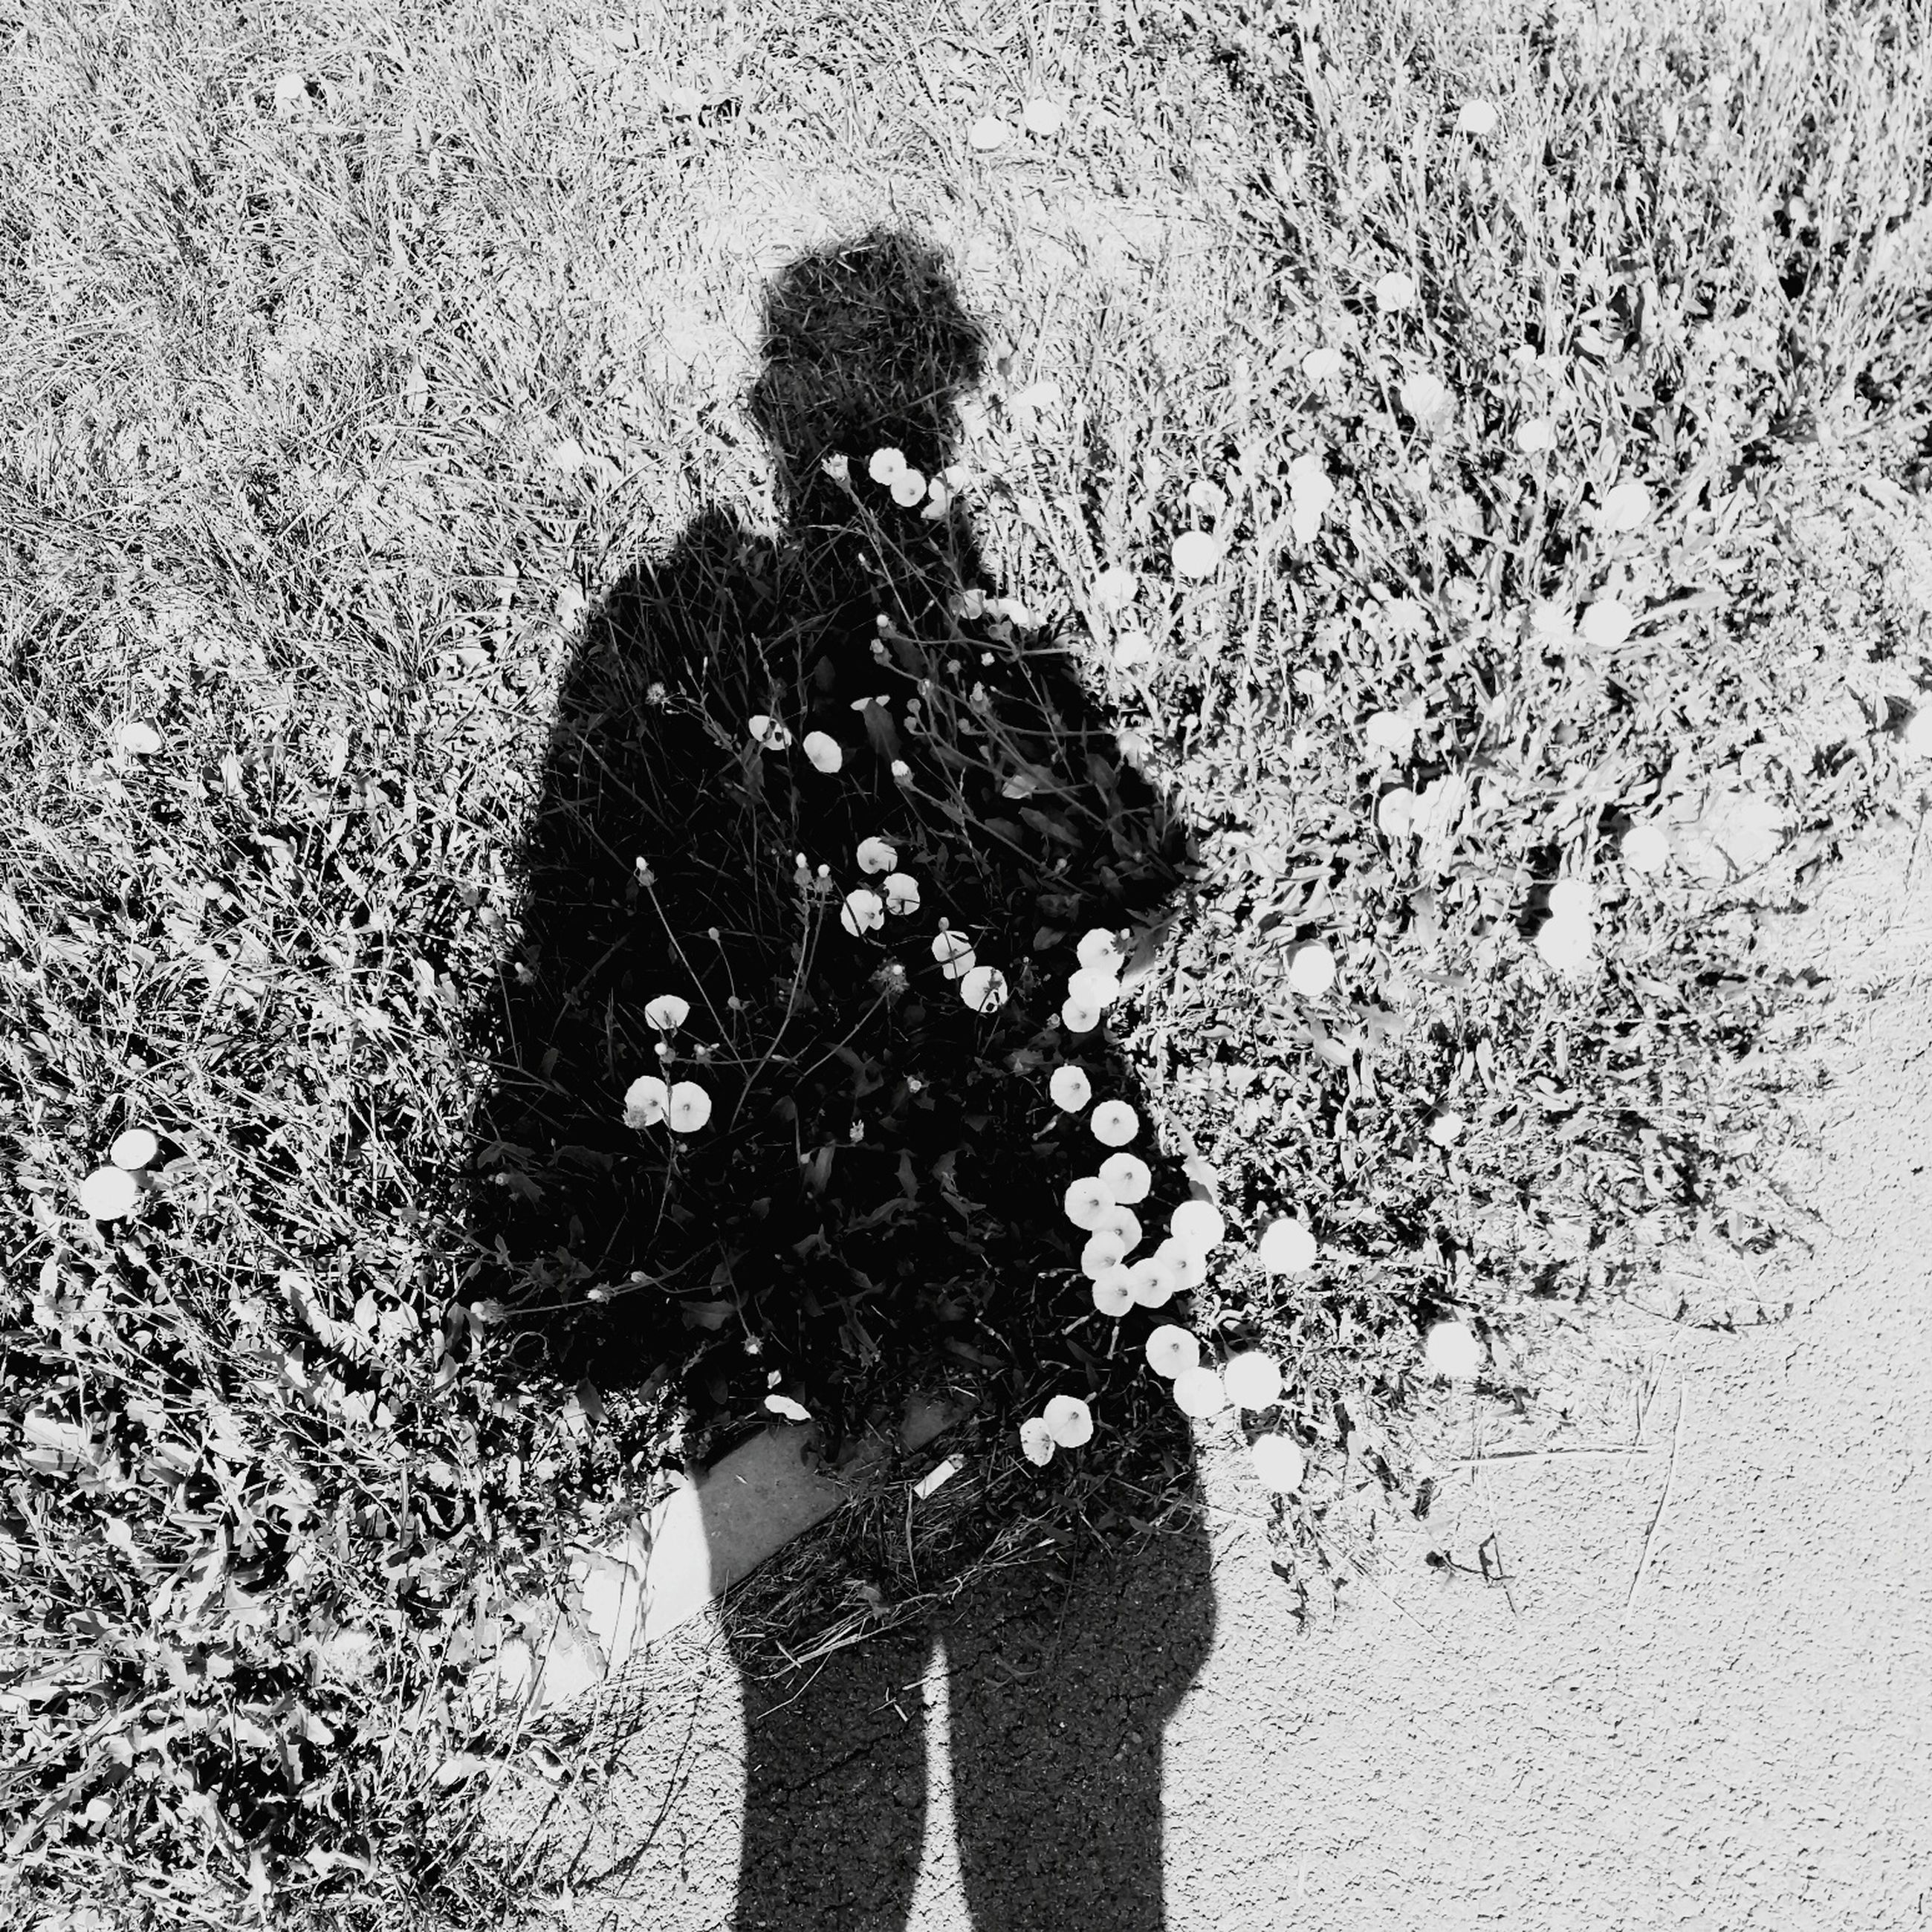 shadow, standing, high angle view, sunny, leisure activity, gesturing, holding, outdoors, footpath, day, carrying, person, focus on shadow